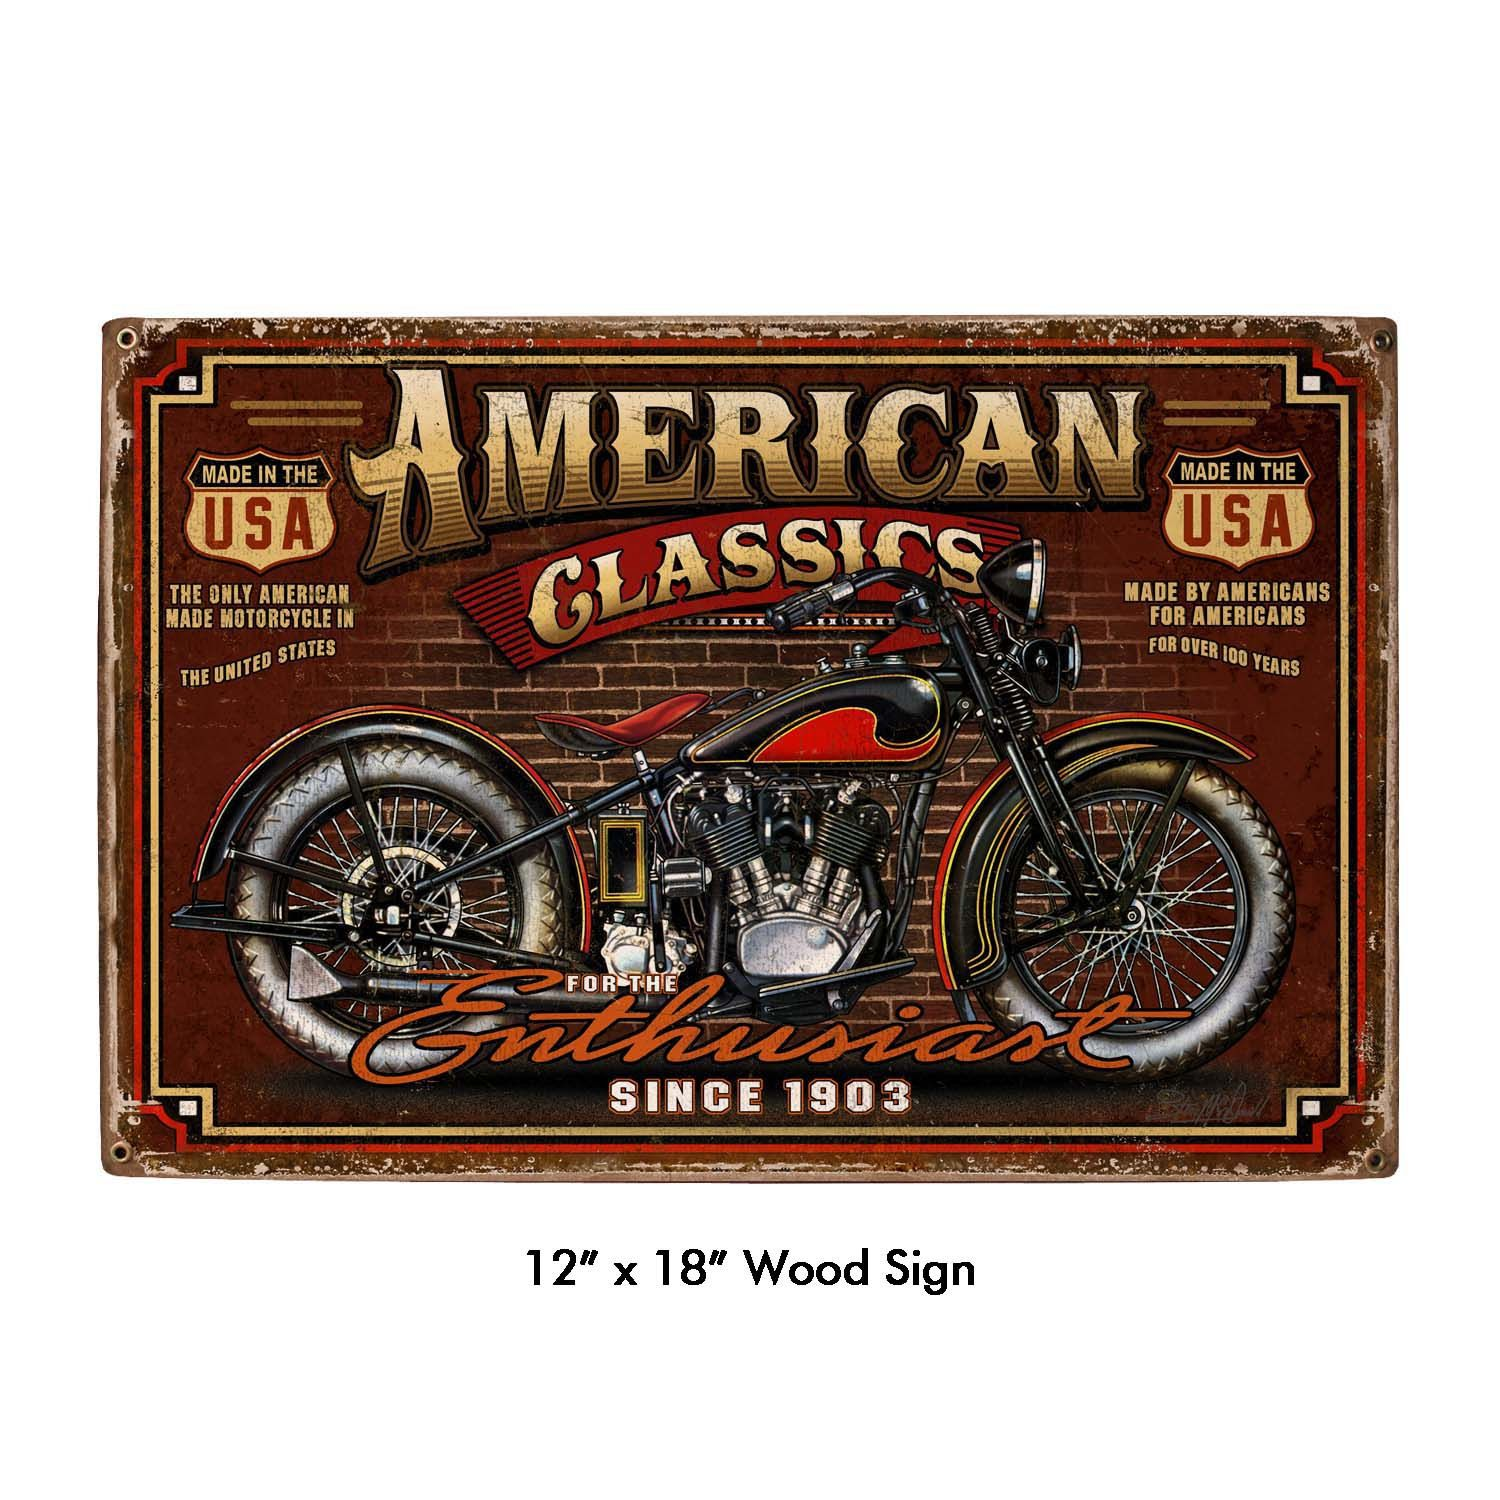 American classic motorcycle art on wood sign vintage style garage art wall decor ls257w by - American motorbike garage ...